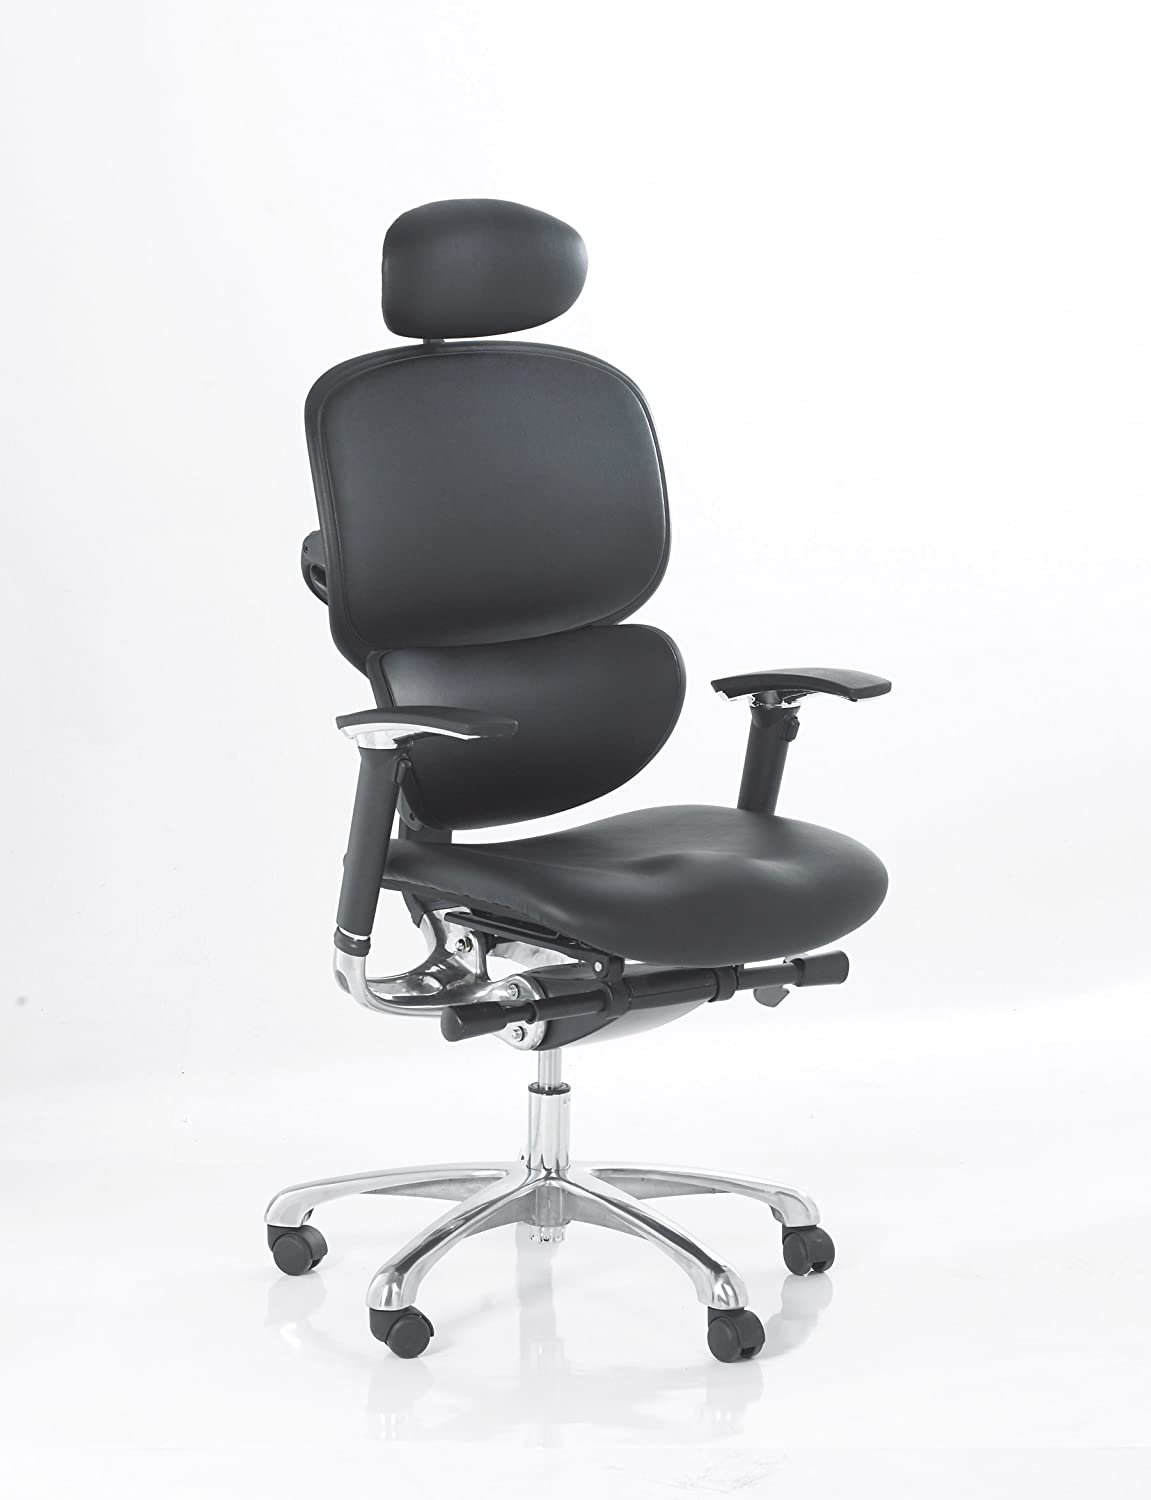 while office people affordable executive an comfort large bigger heavier tailored extra tall taller a fit adding is for long big that to finally amazon chairs providing hours chair and of